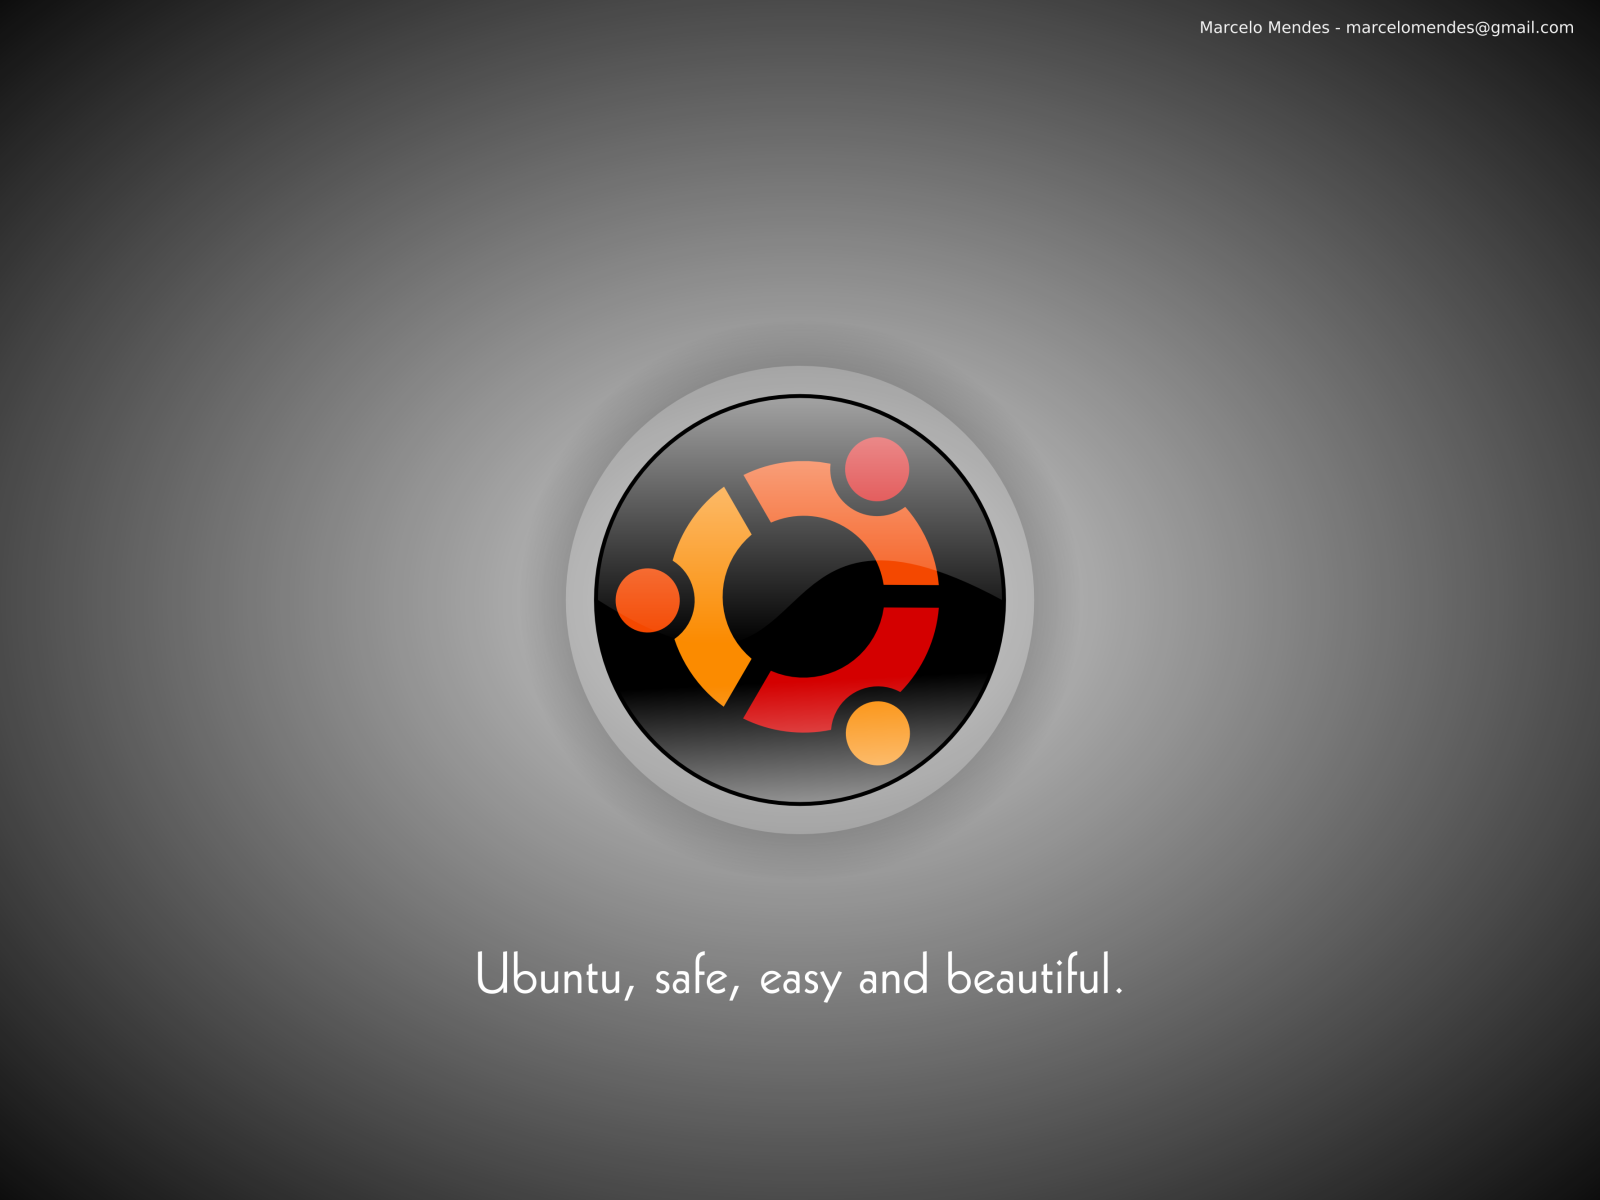 Ubuntu images Wallpapers New Ubuntu Wallpapers hq ubuntu wallpapers 1600x1200